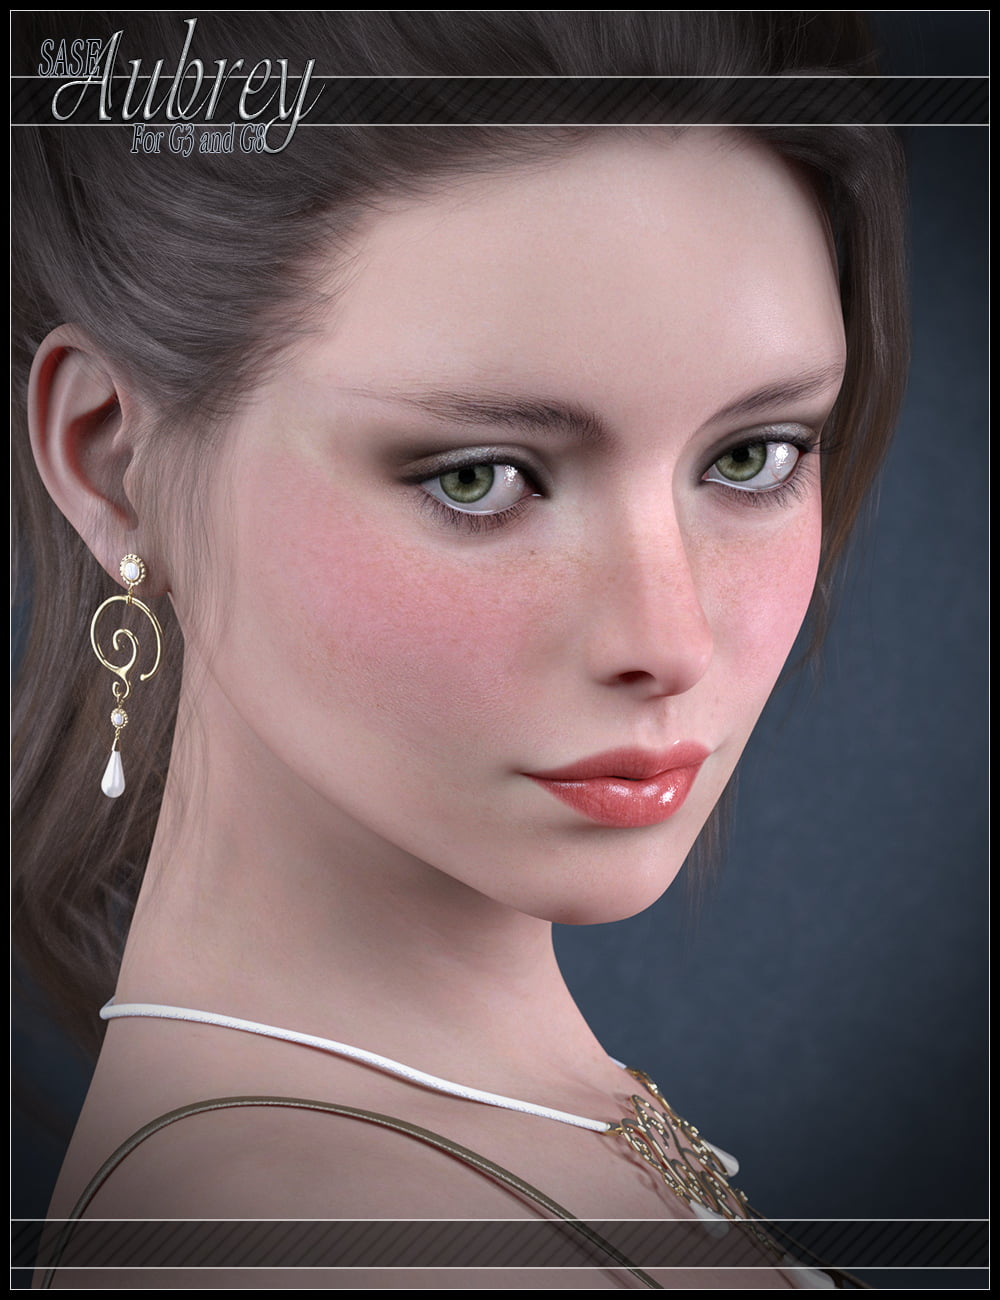 SASE Aubrey for Genesis 3 and Genesis 8